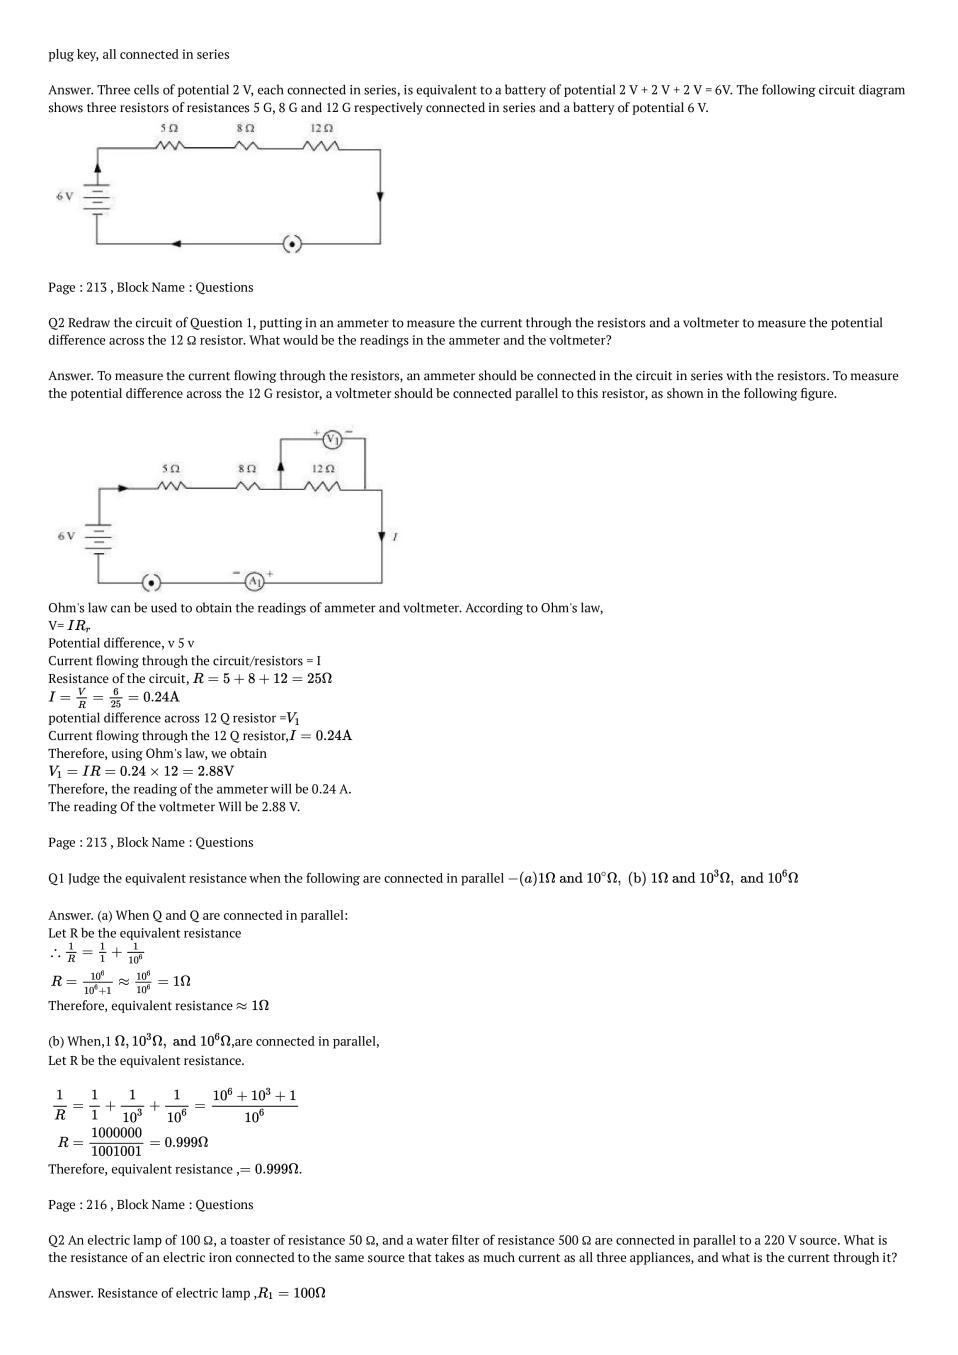 NCERT Solutions for Class 10 Science Chapter 12 Electricity